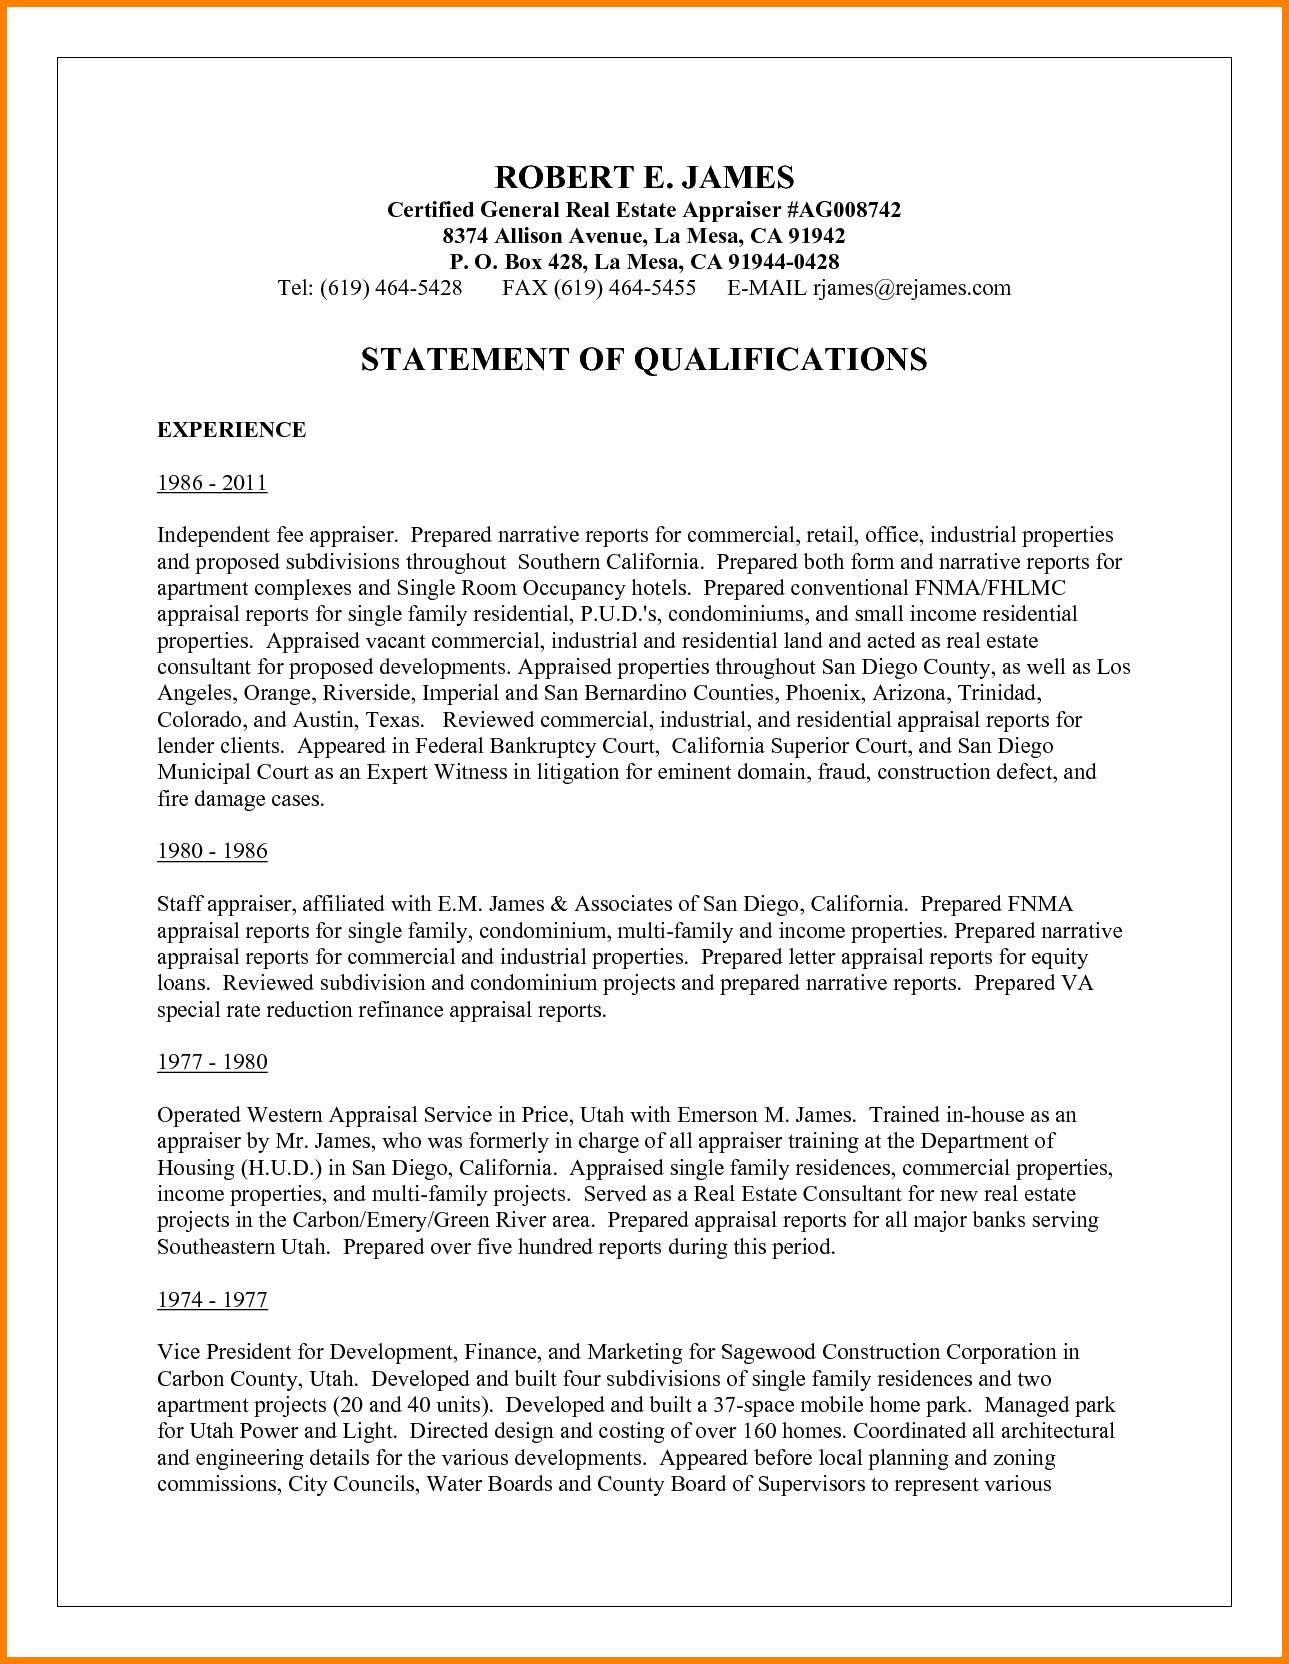 Opera Resume Template - Narrative Resume Sample Best Narrative Resume Samples Unique Opera